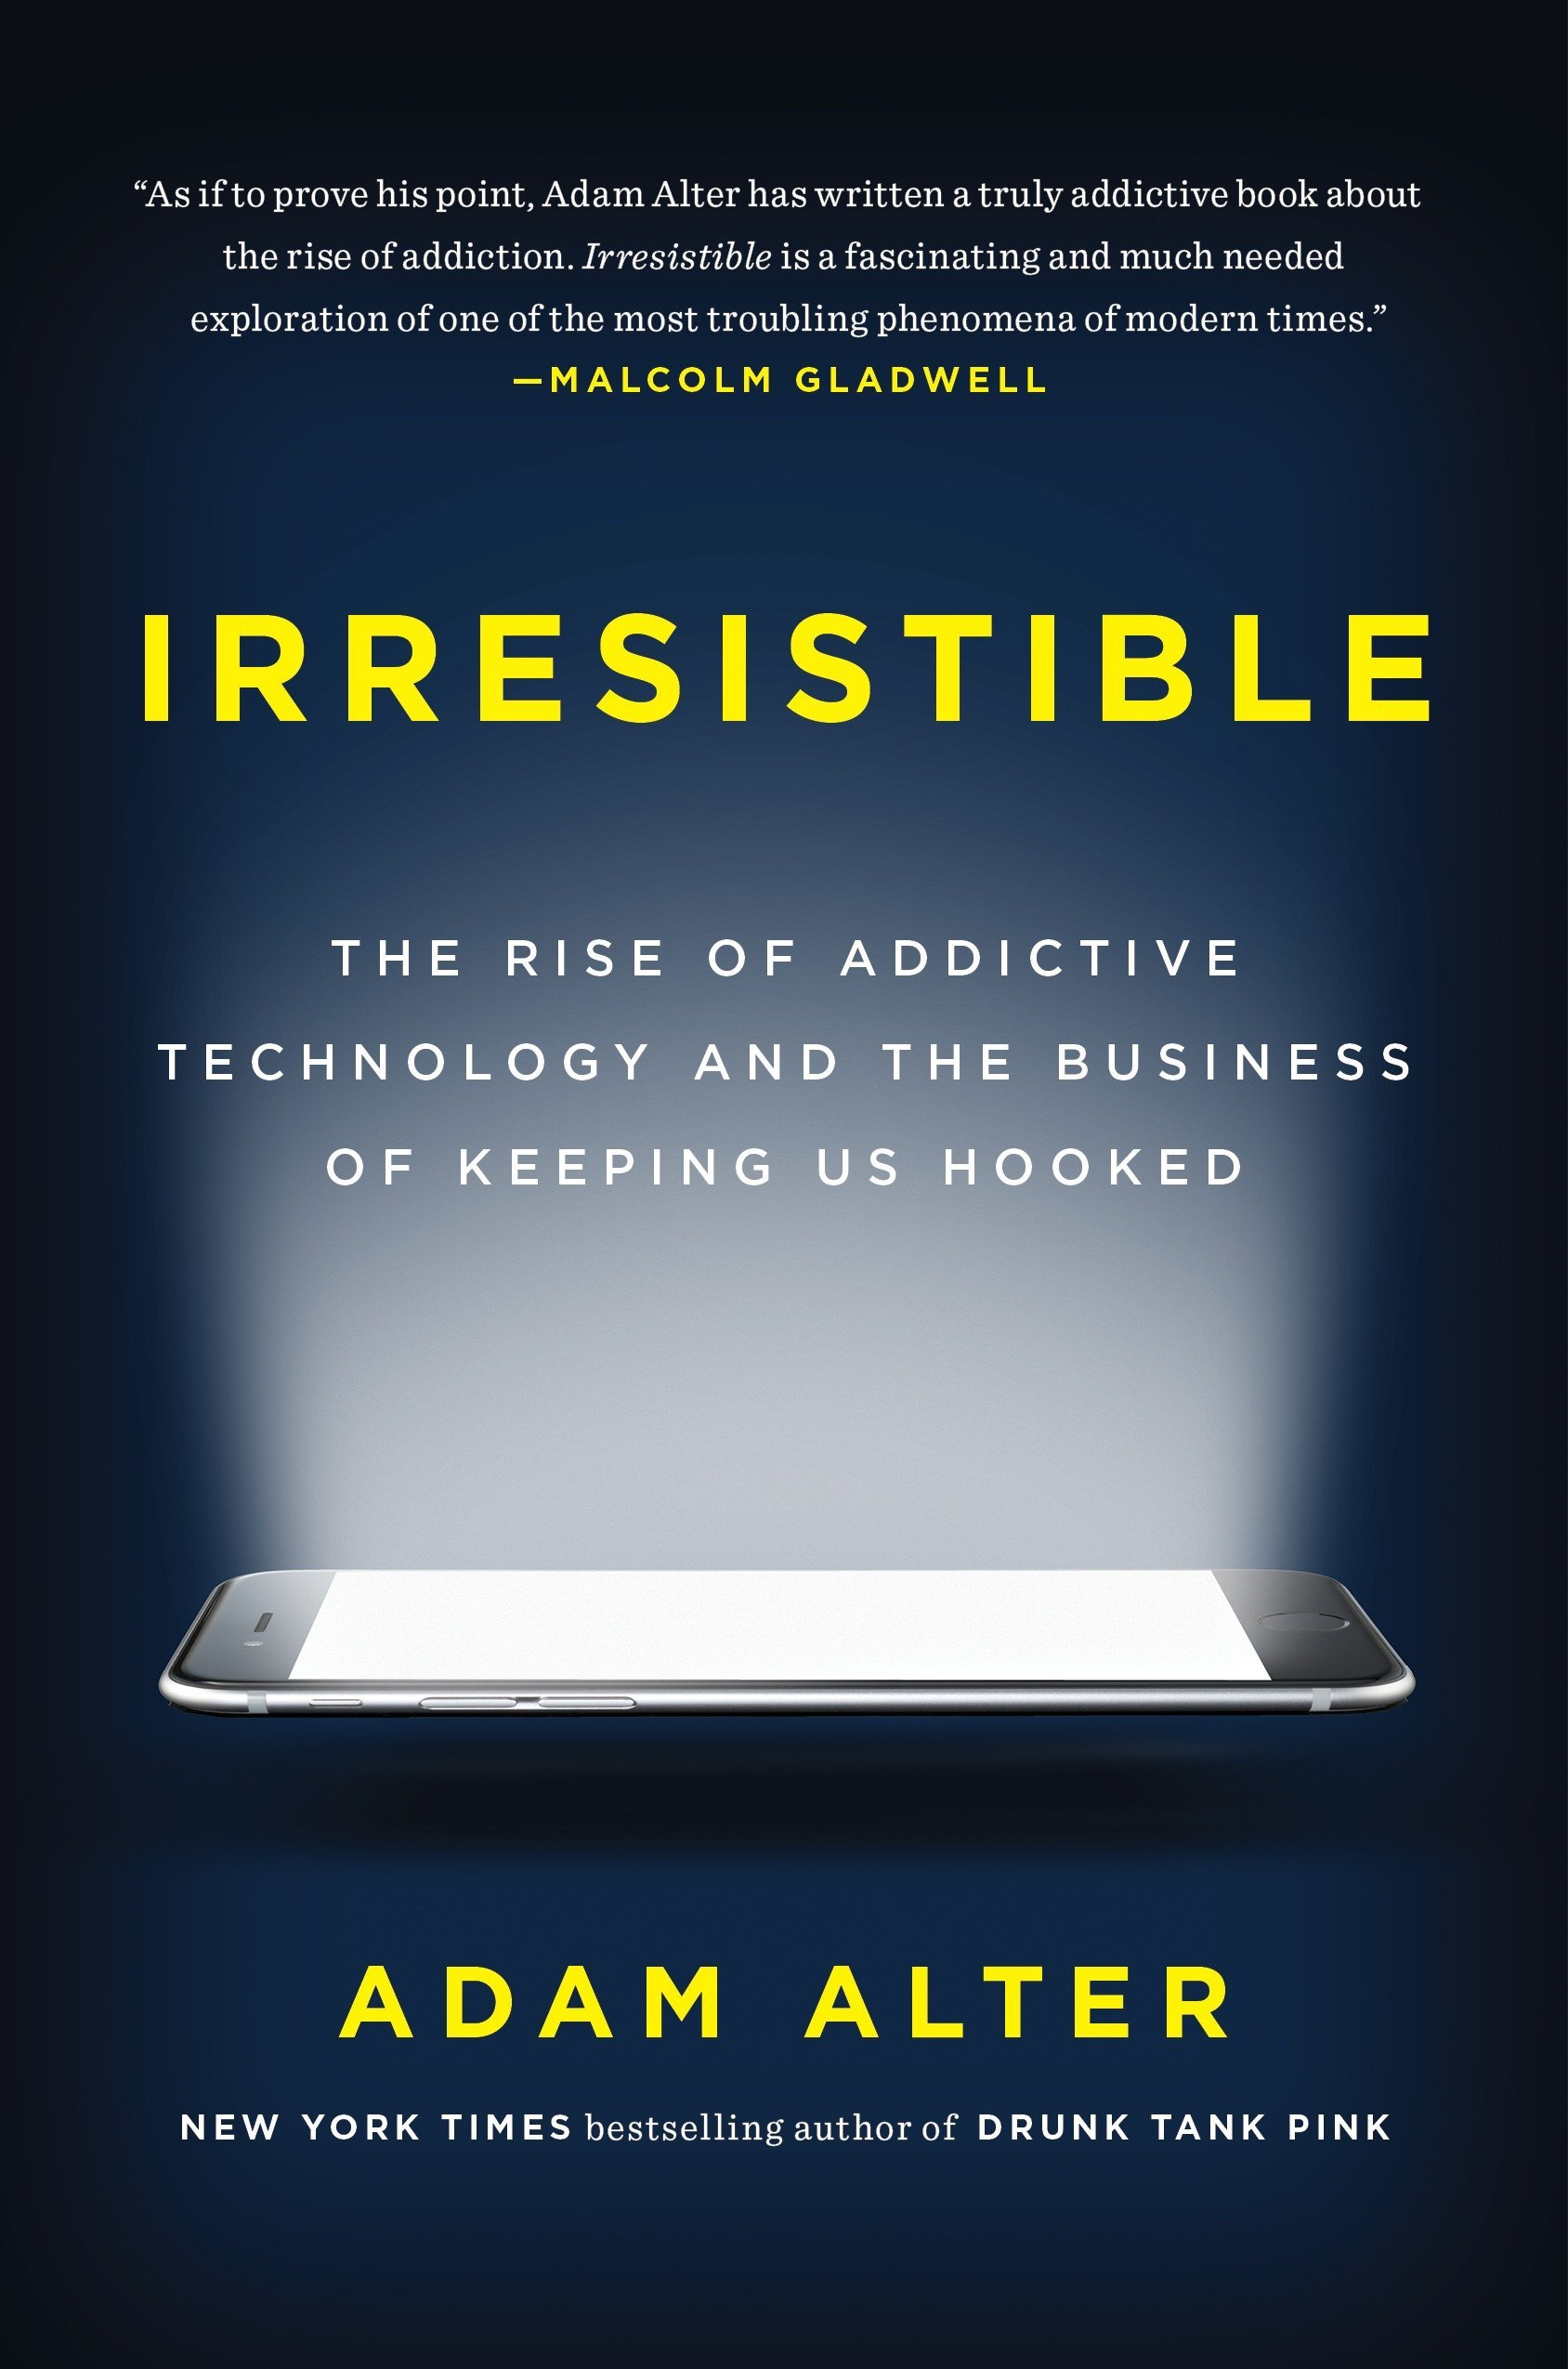 Book cover of Irresistible by Adam Alter.